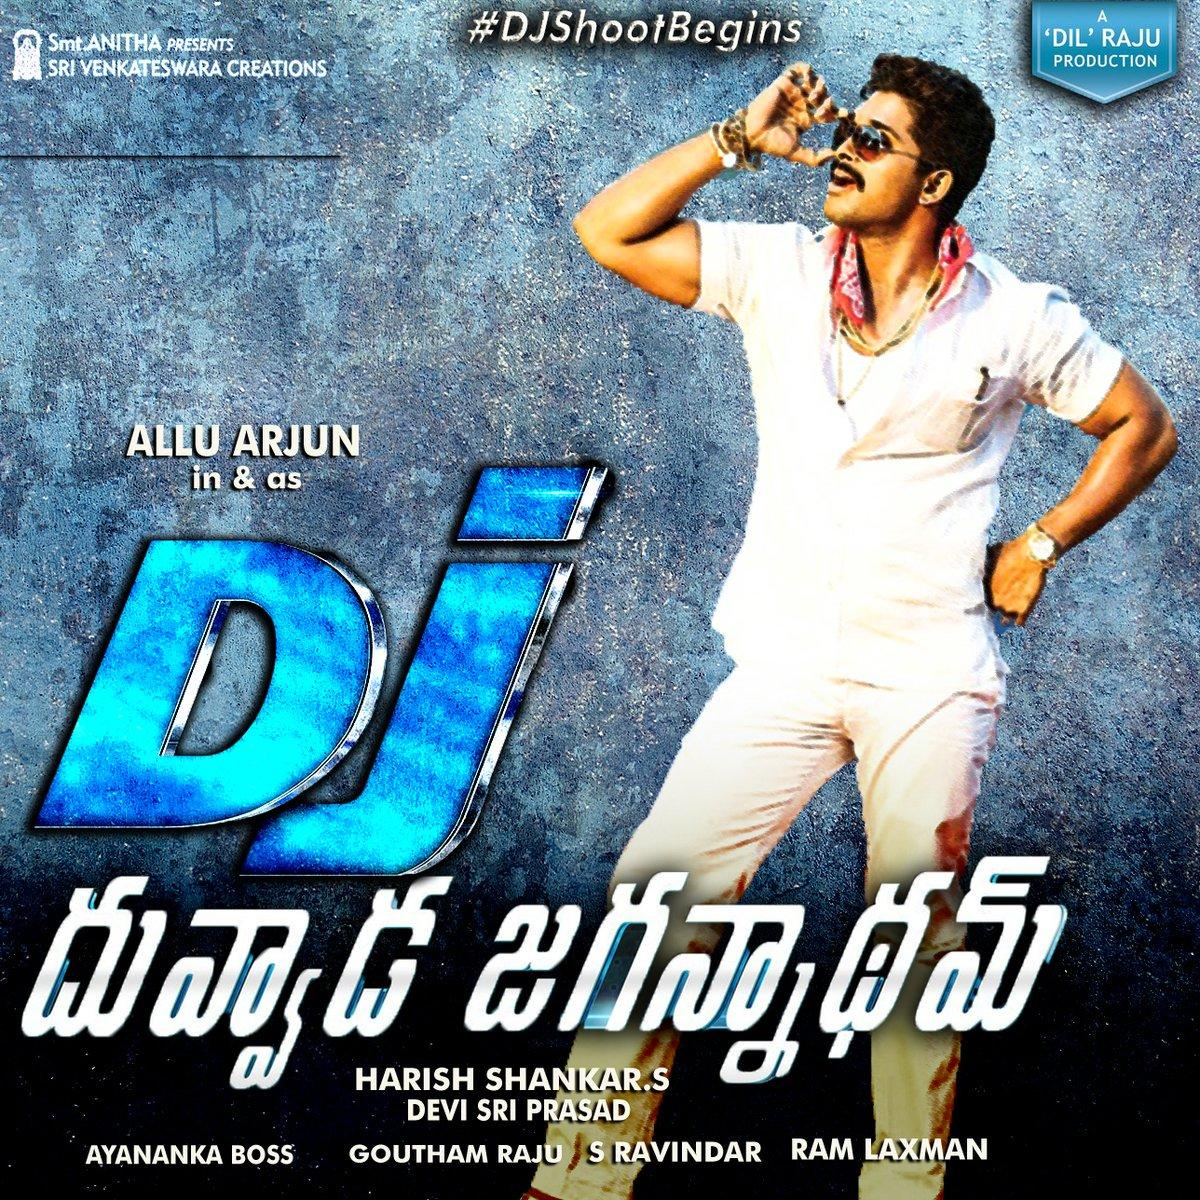 Dj movie hindi dubbed songs free download site